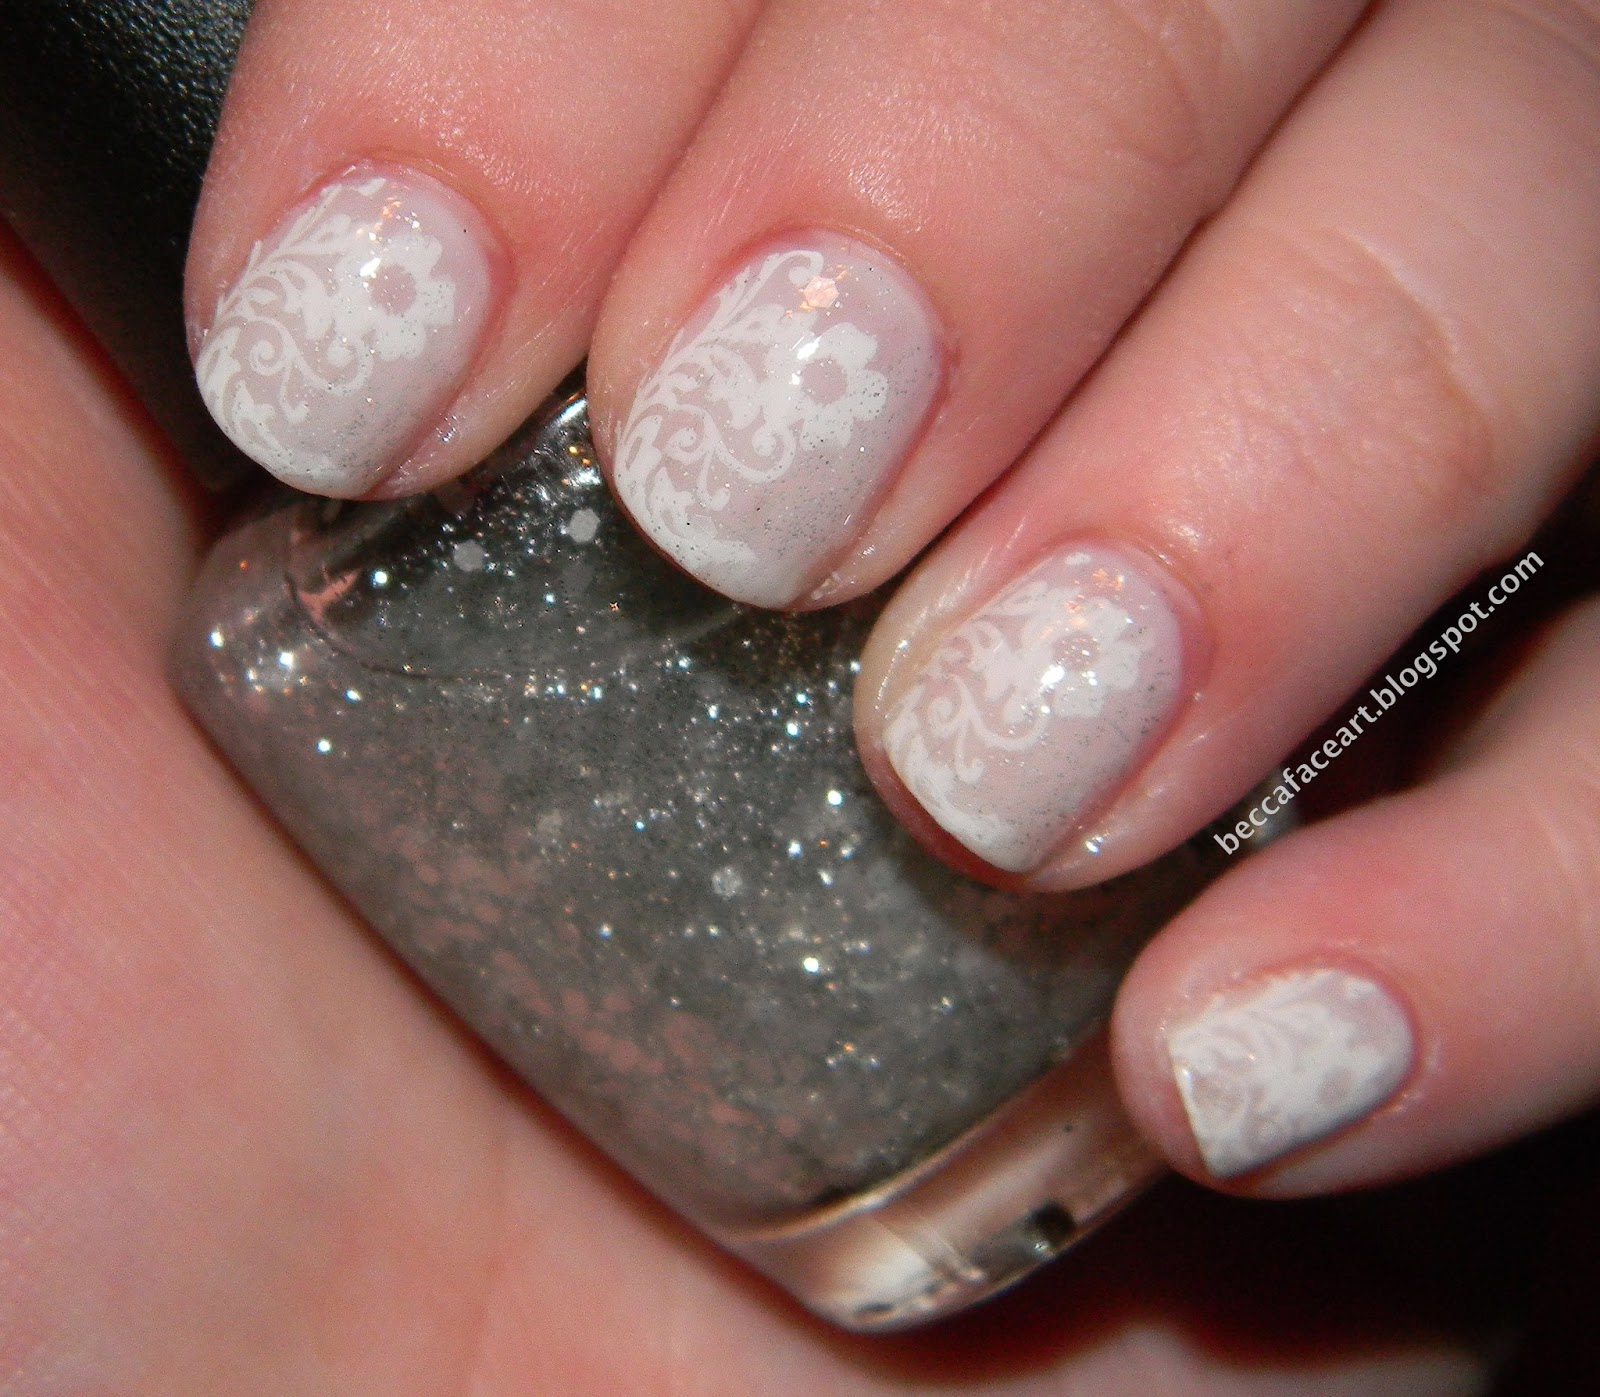 Becca Face Nail Art Delicate Flower Nails